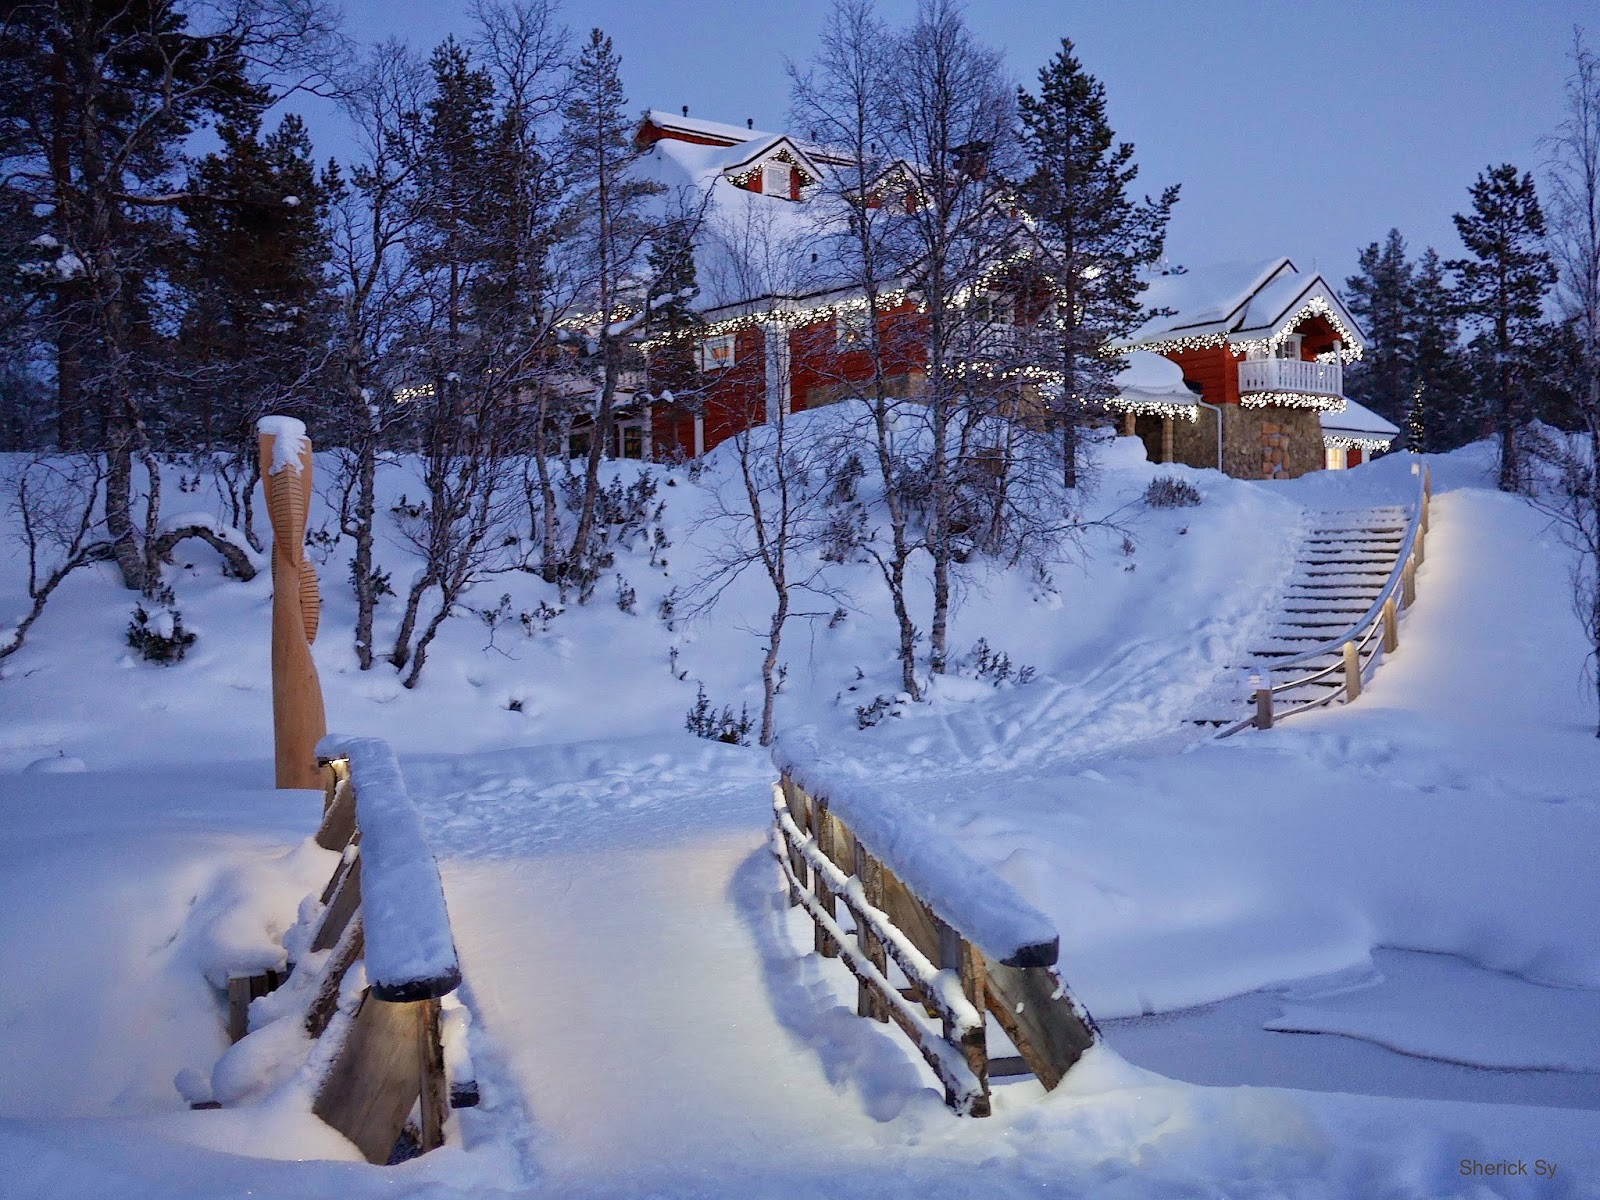 Celebration House, Igloo Village, Kakslauttanen, Finland